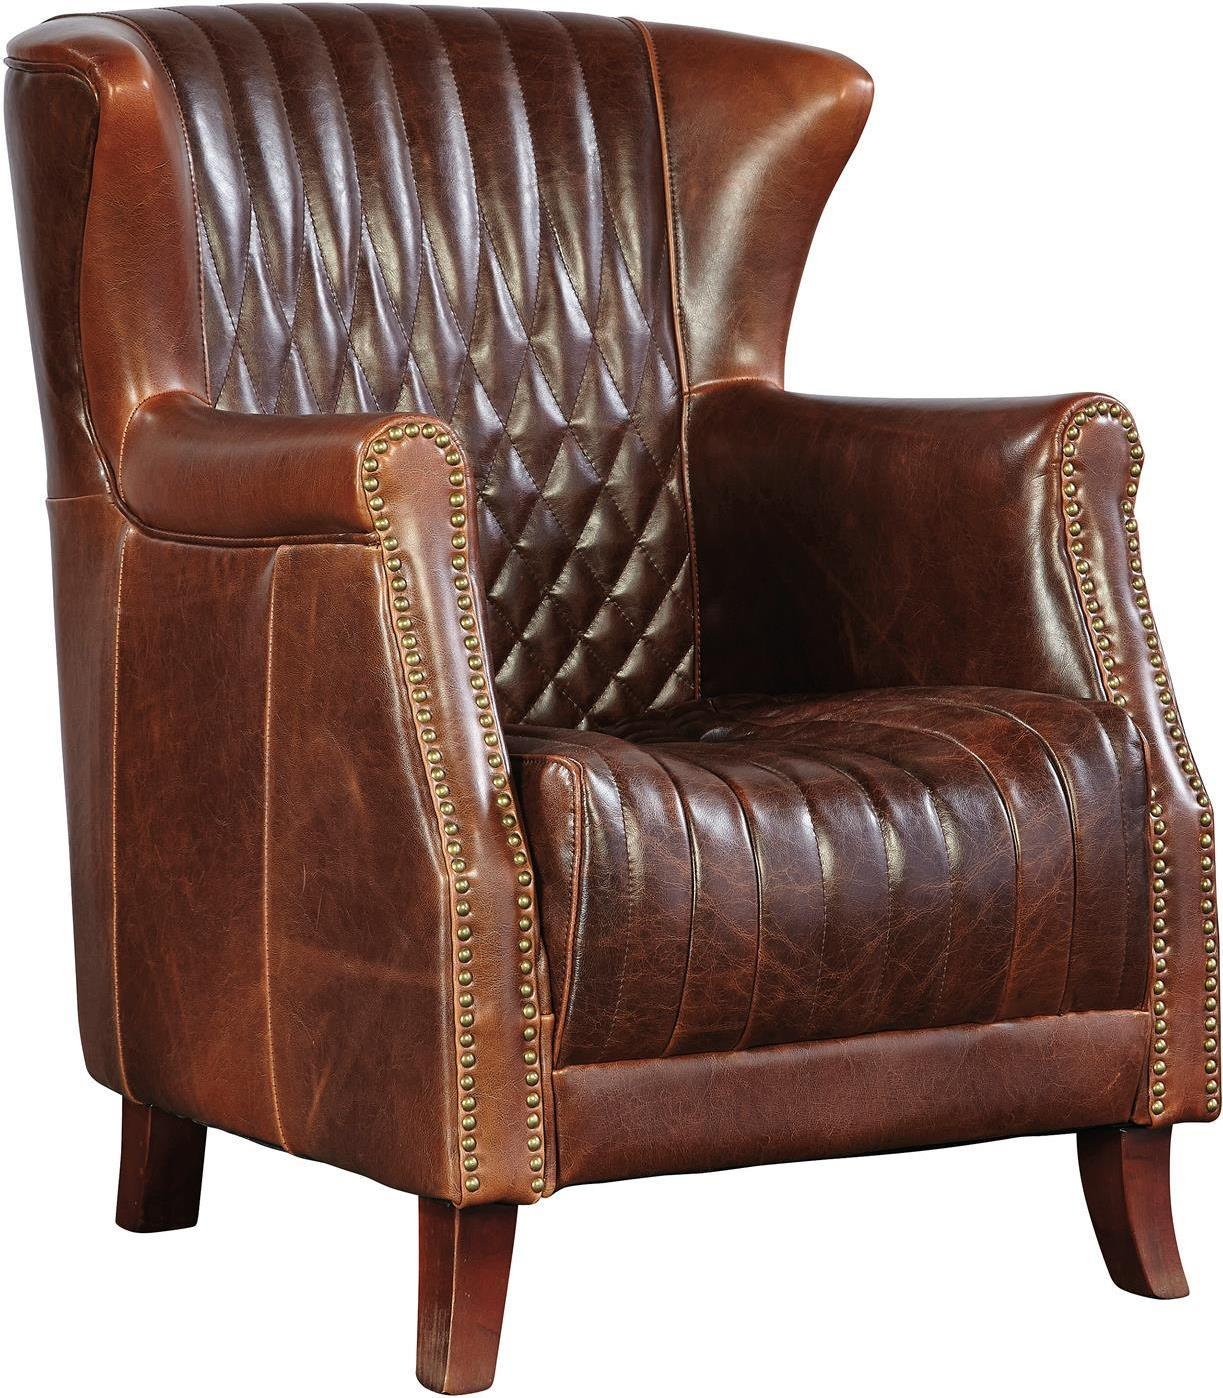 Wing Chair Armchair Furniture Classics Paris Flea Market